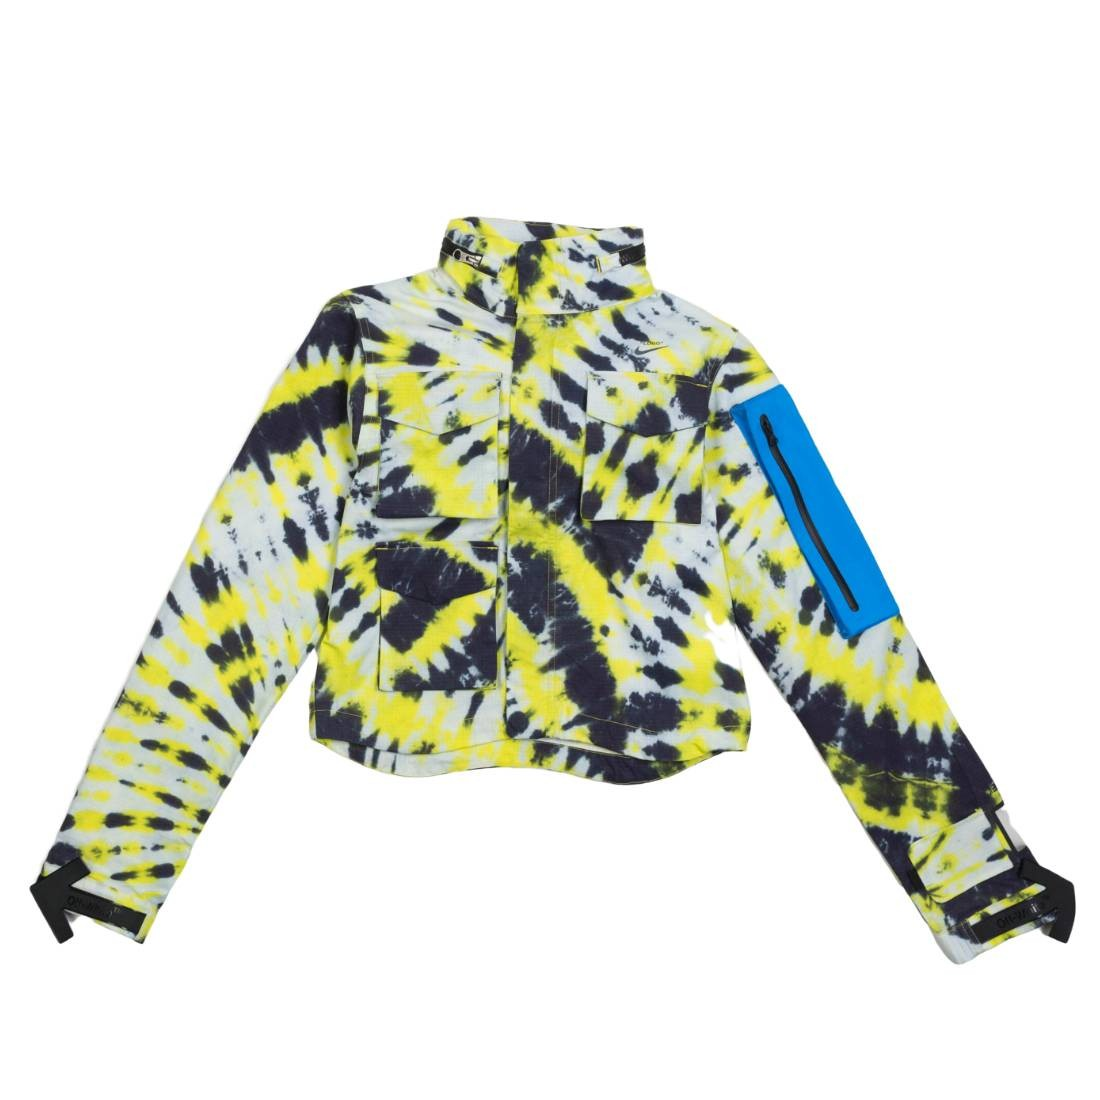 Nike X Off-White Women Nrg As #27 Aop Jacket (volt)